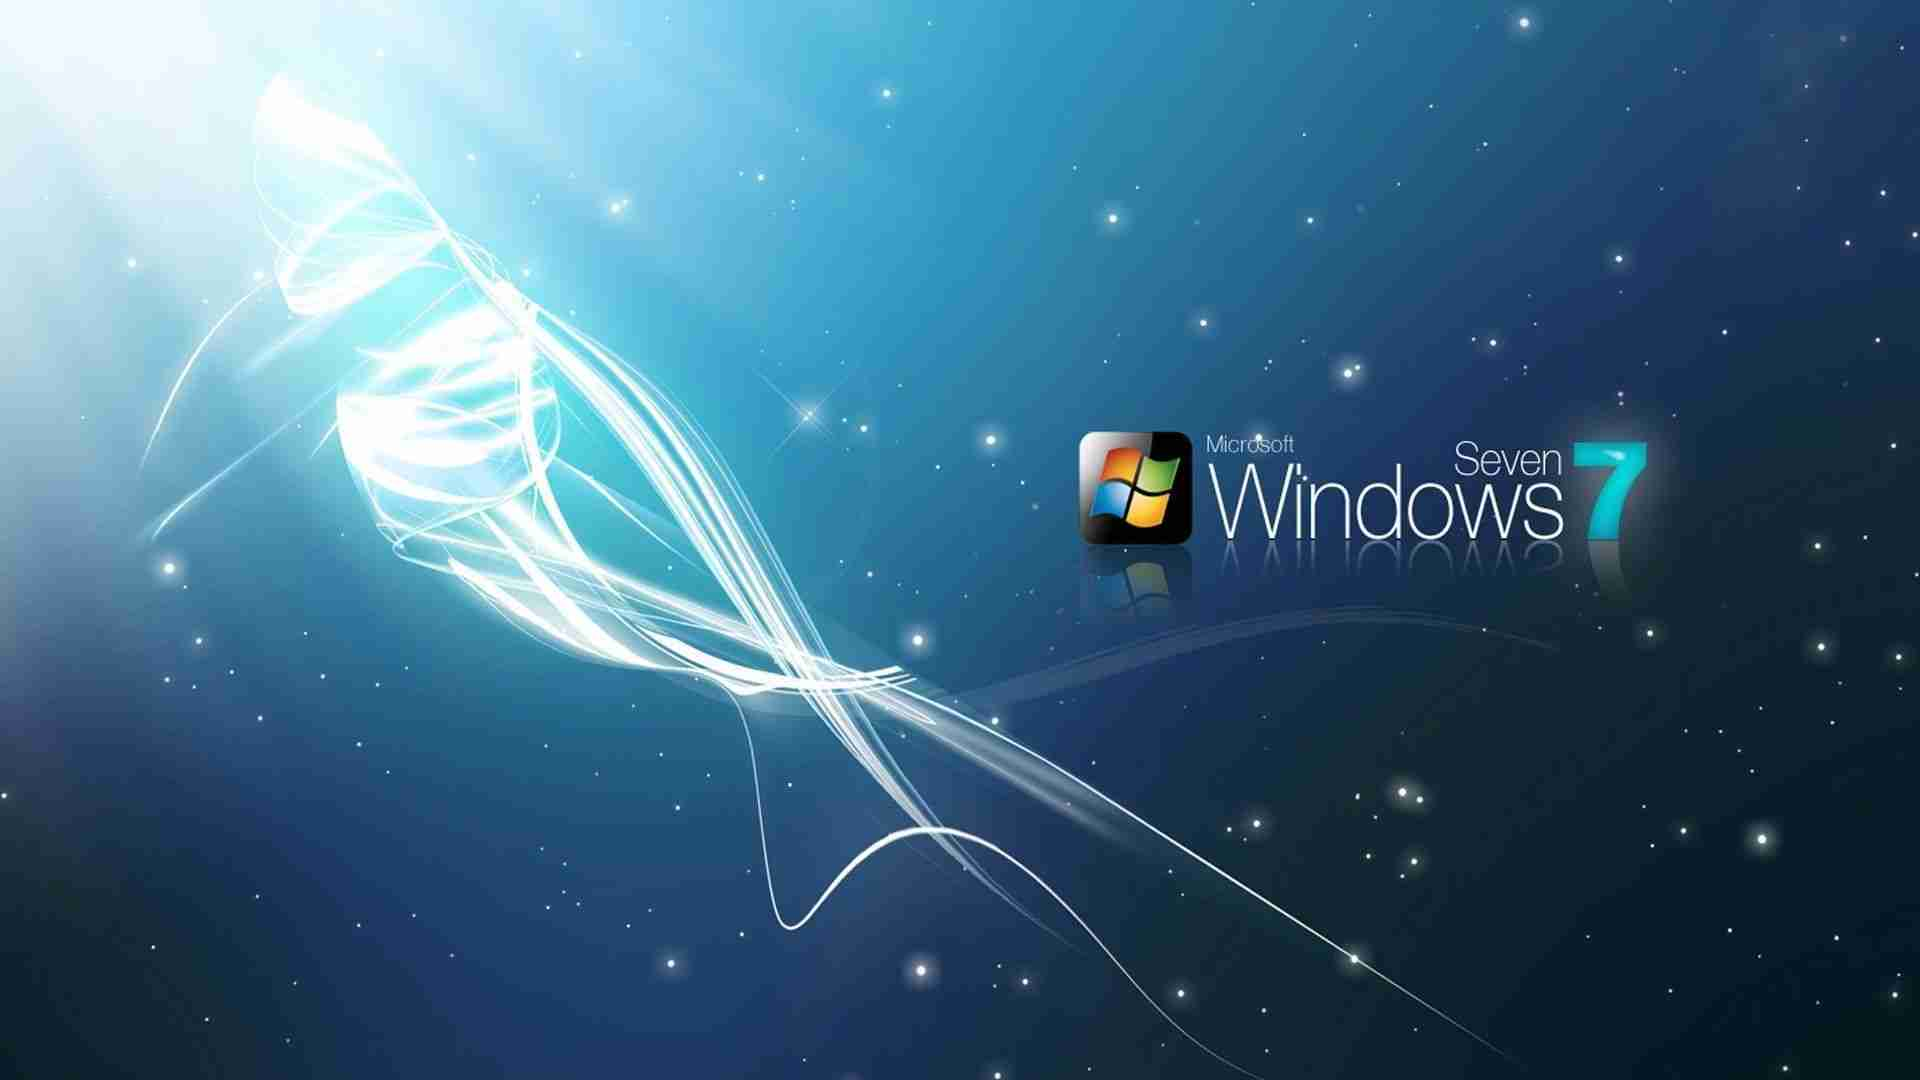 37 High Definition Windows 7 WallpapersBackgrounds For Download 1920x1080